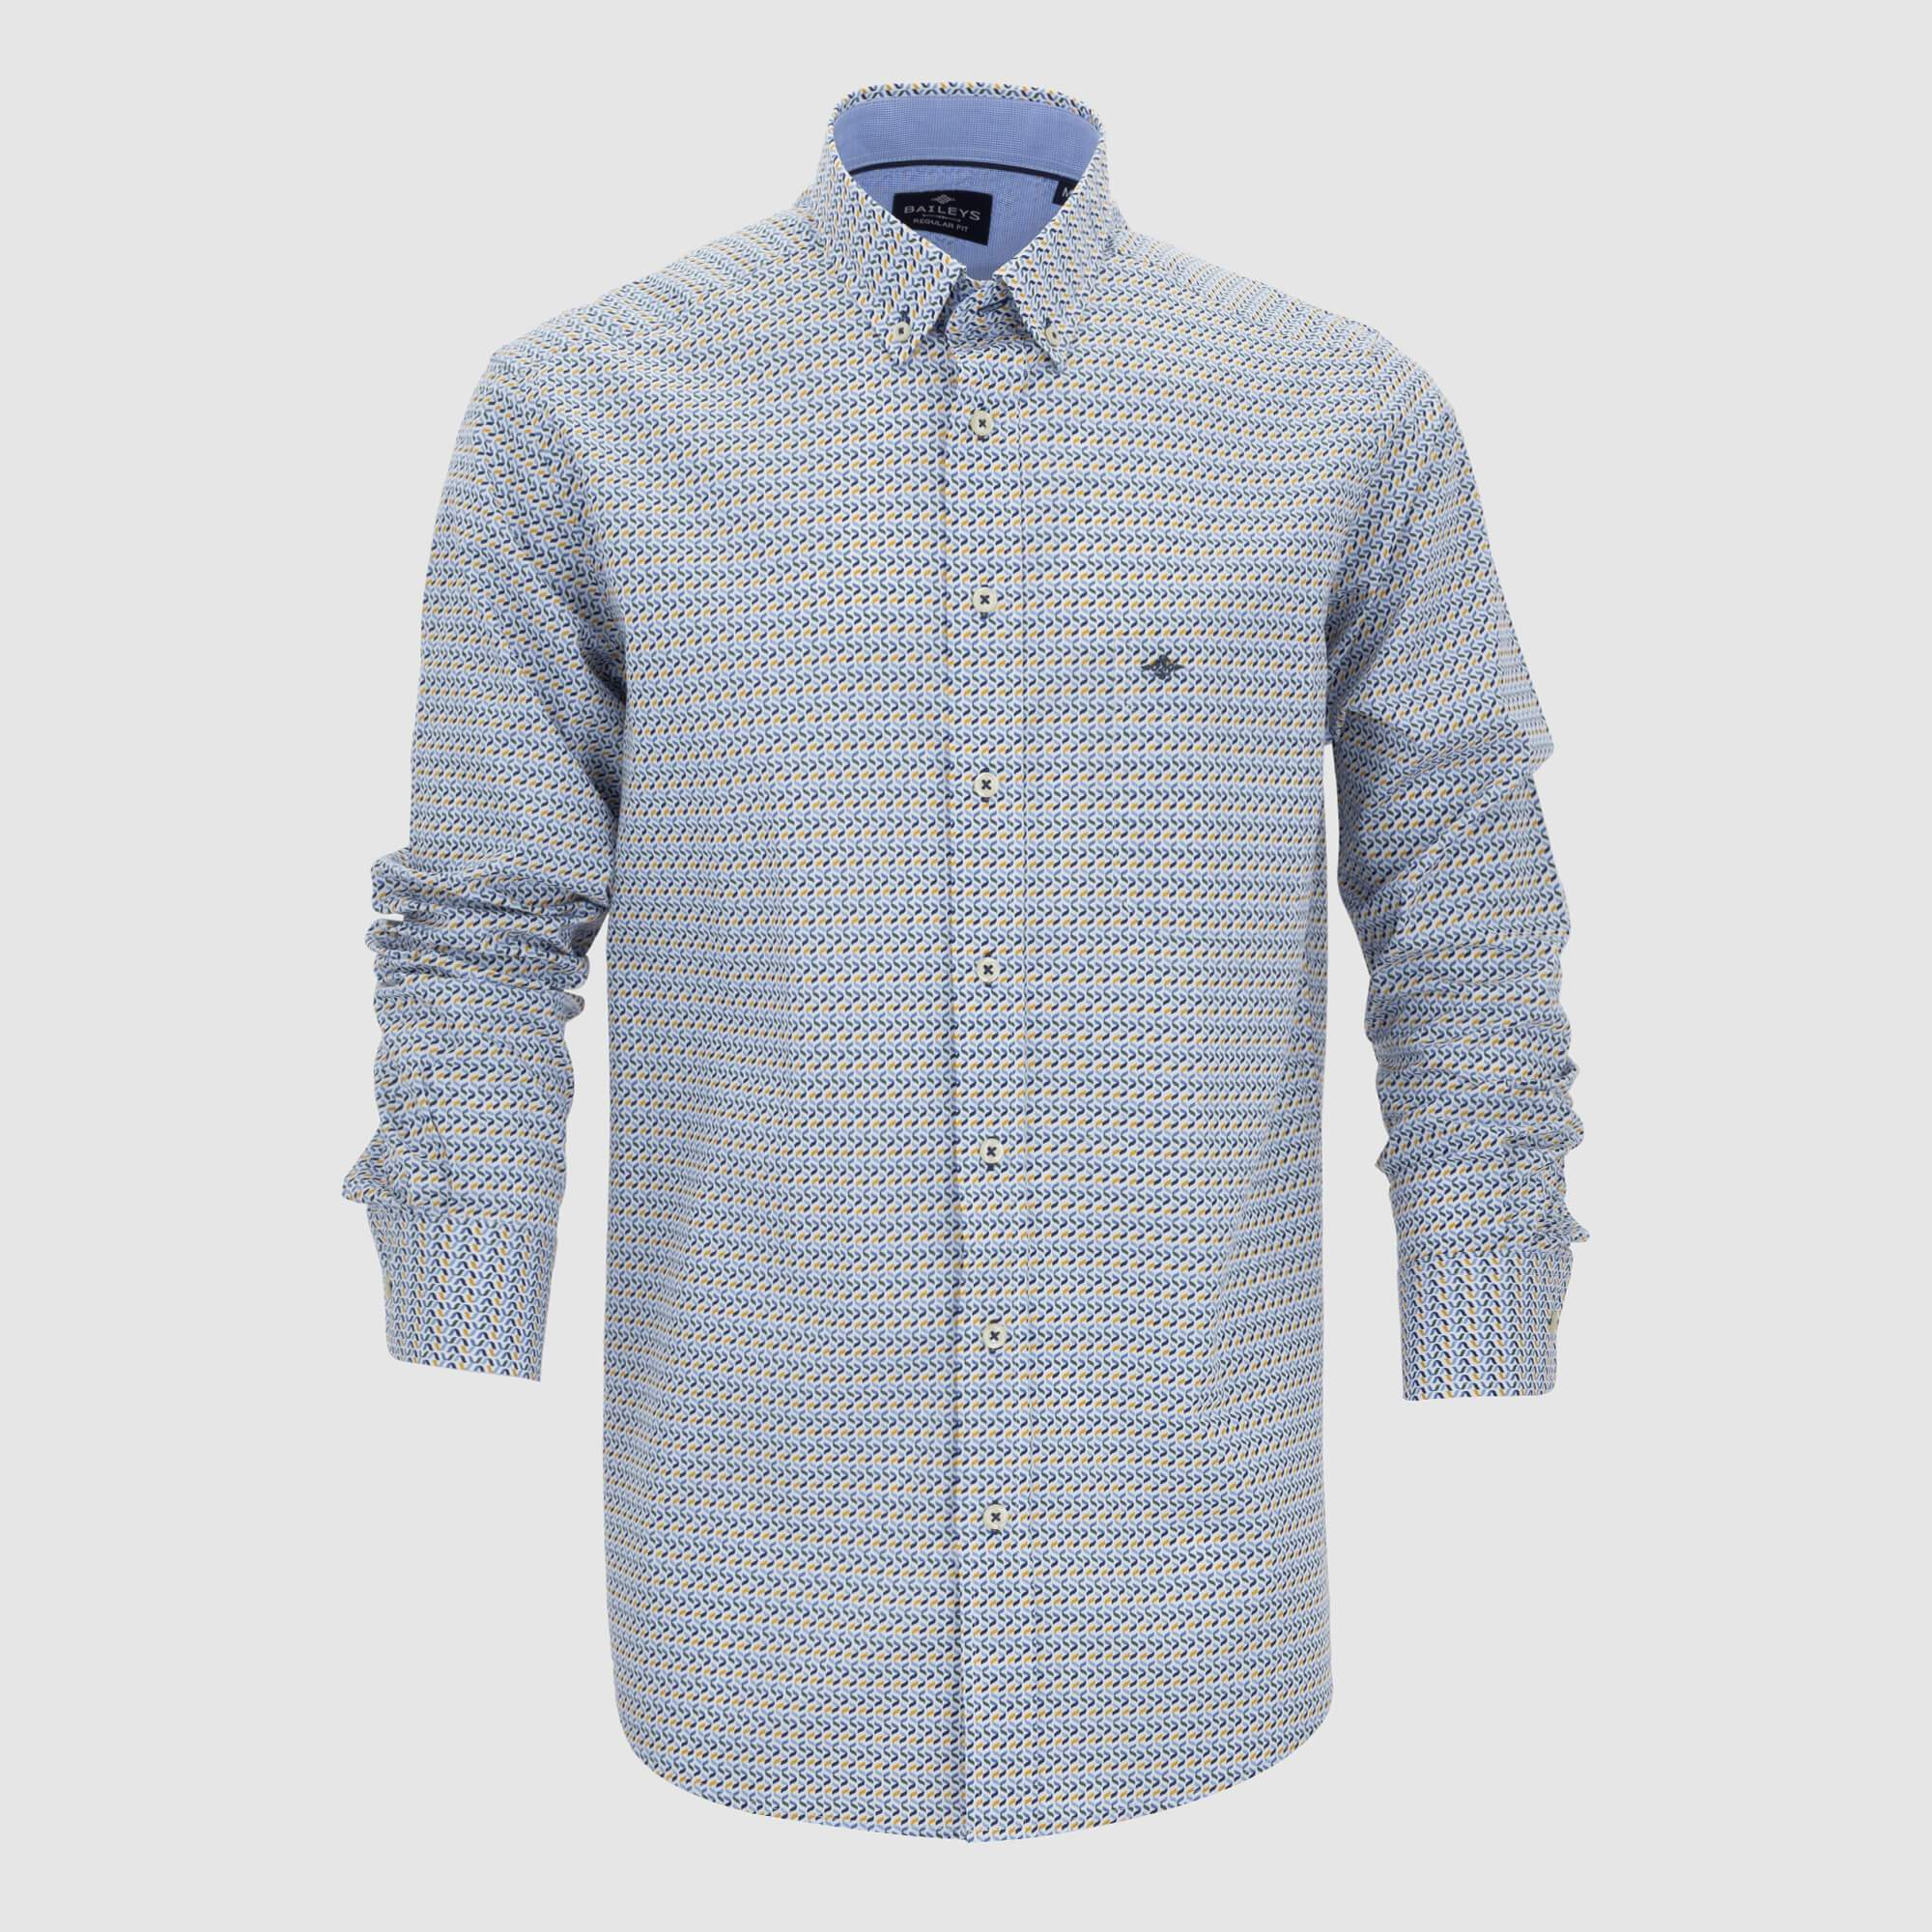 Camisa estampada regular fit 207696